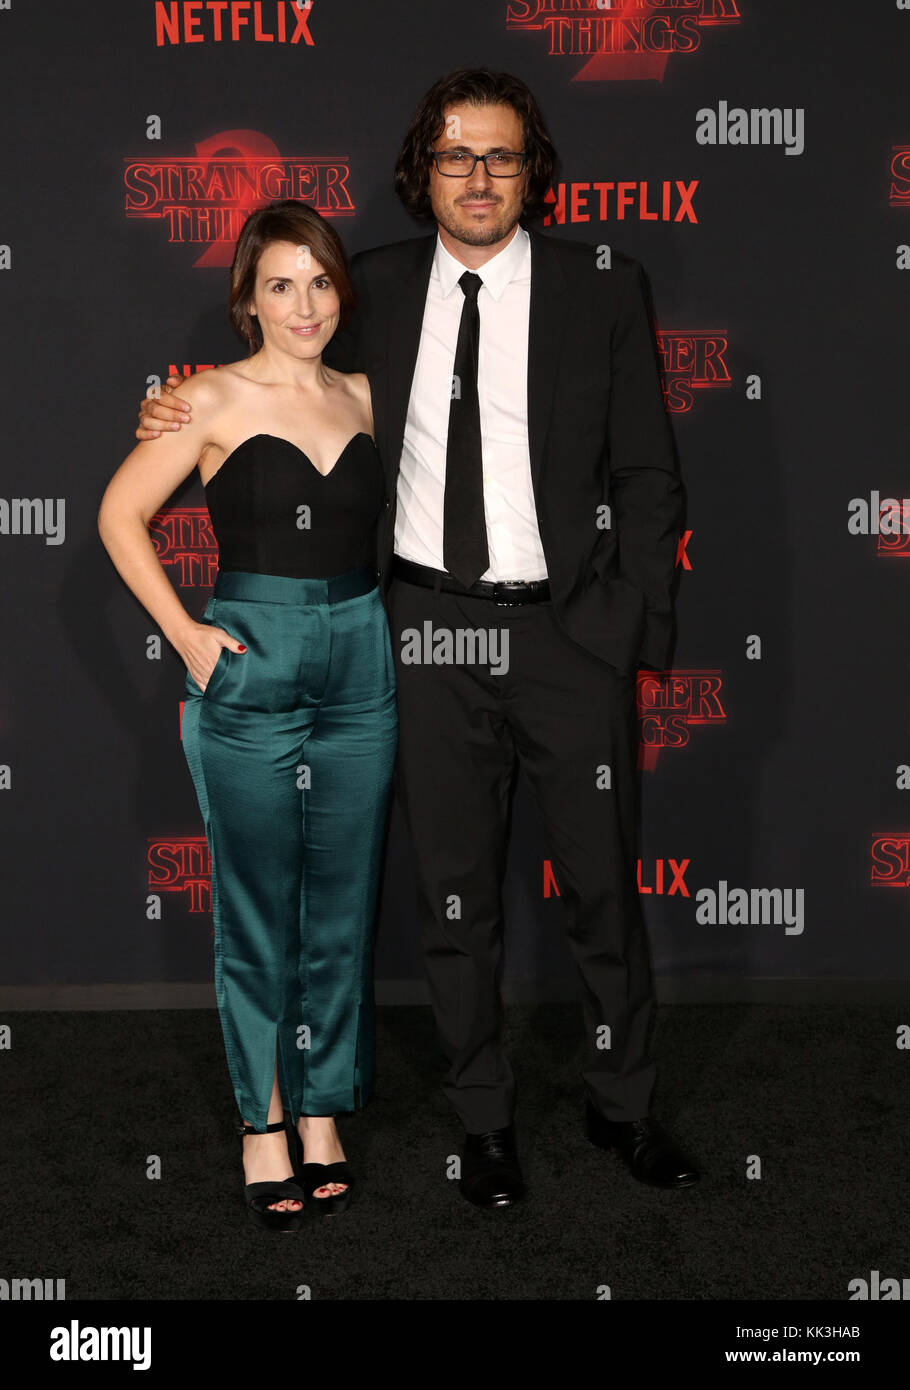 Celebrities attend Netflix's Stranger Things 2 Premiere at Westwood Village Theater.  Featuring: Guests Where: - Stock Image